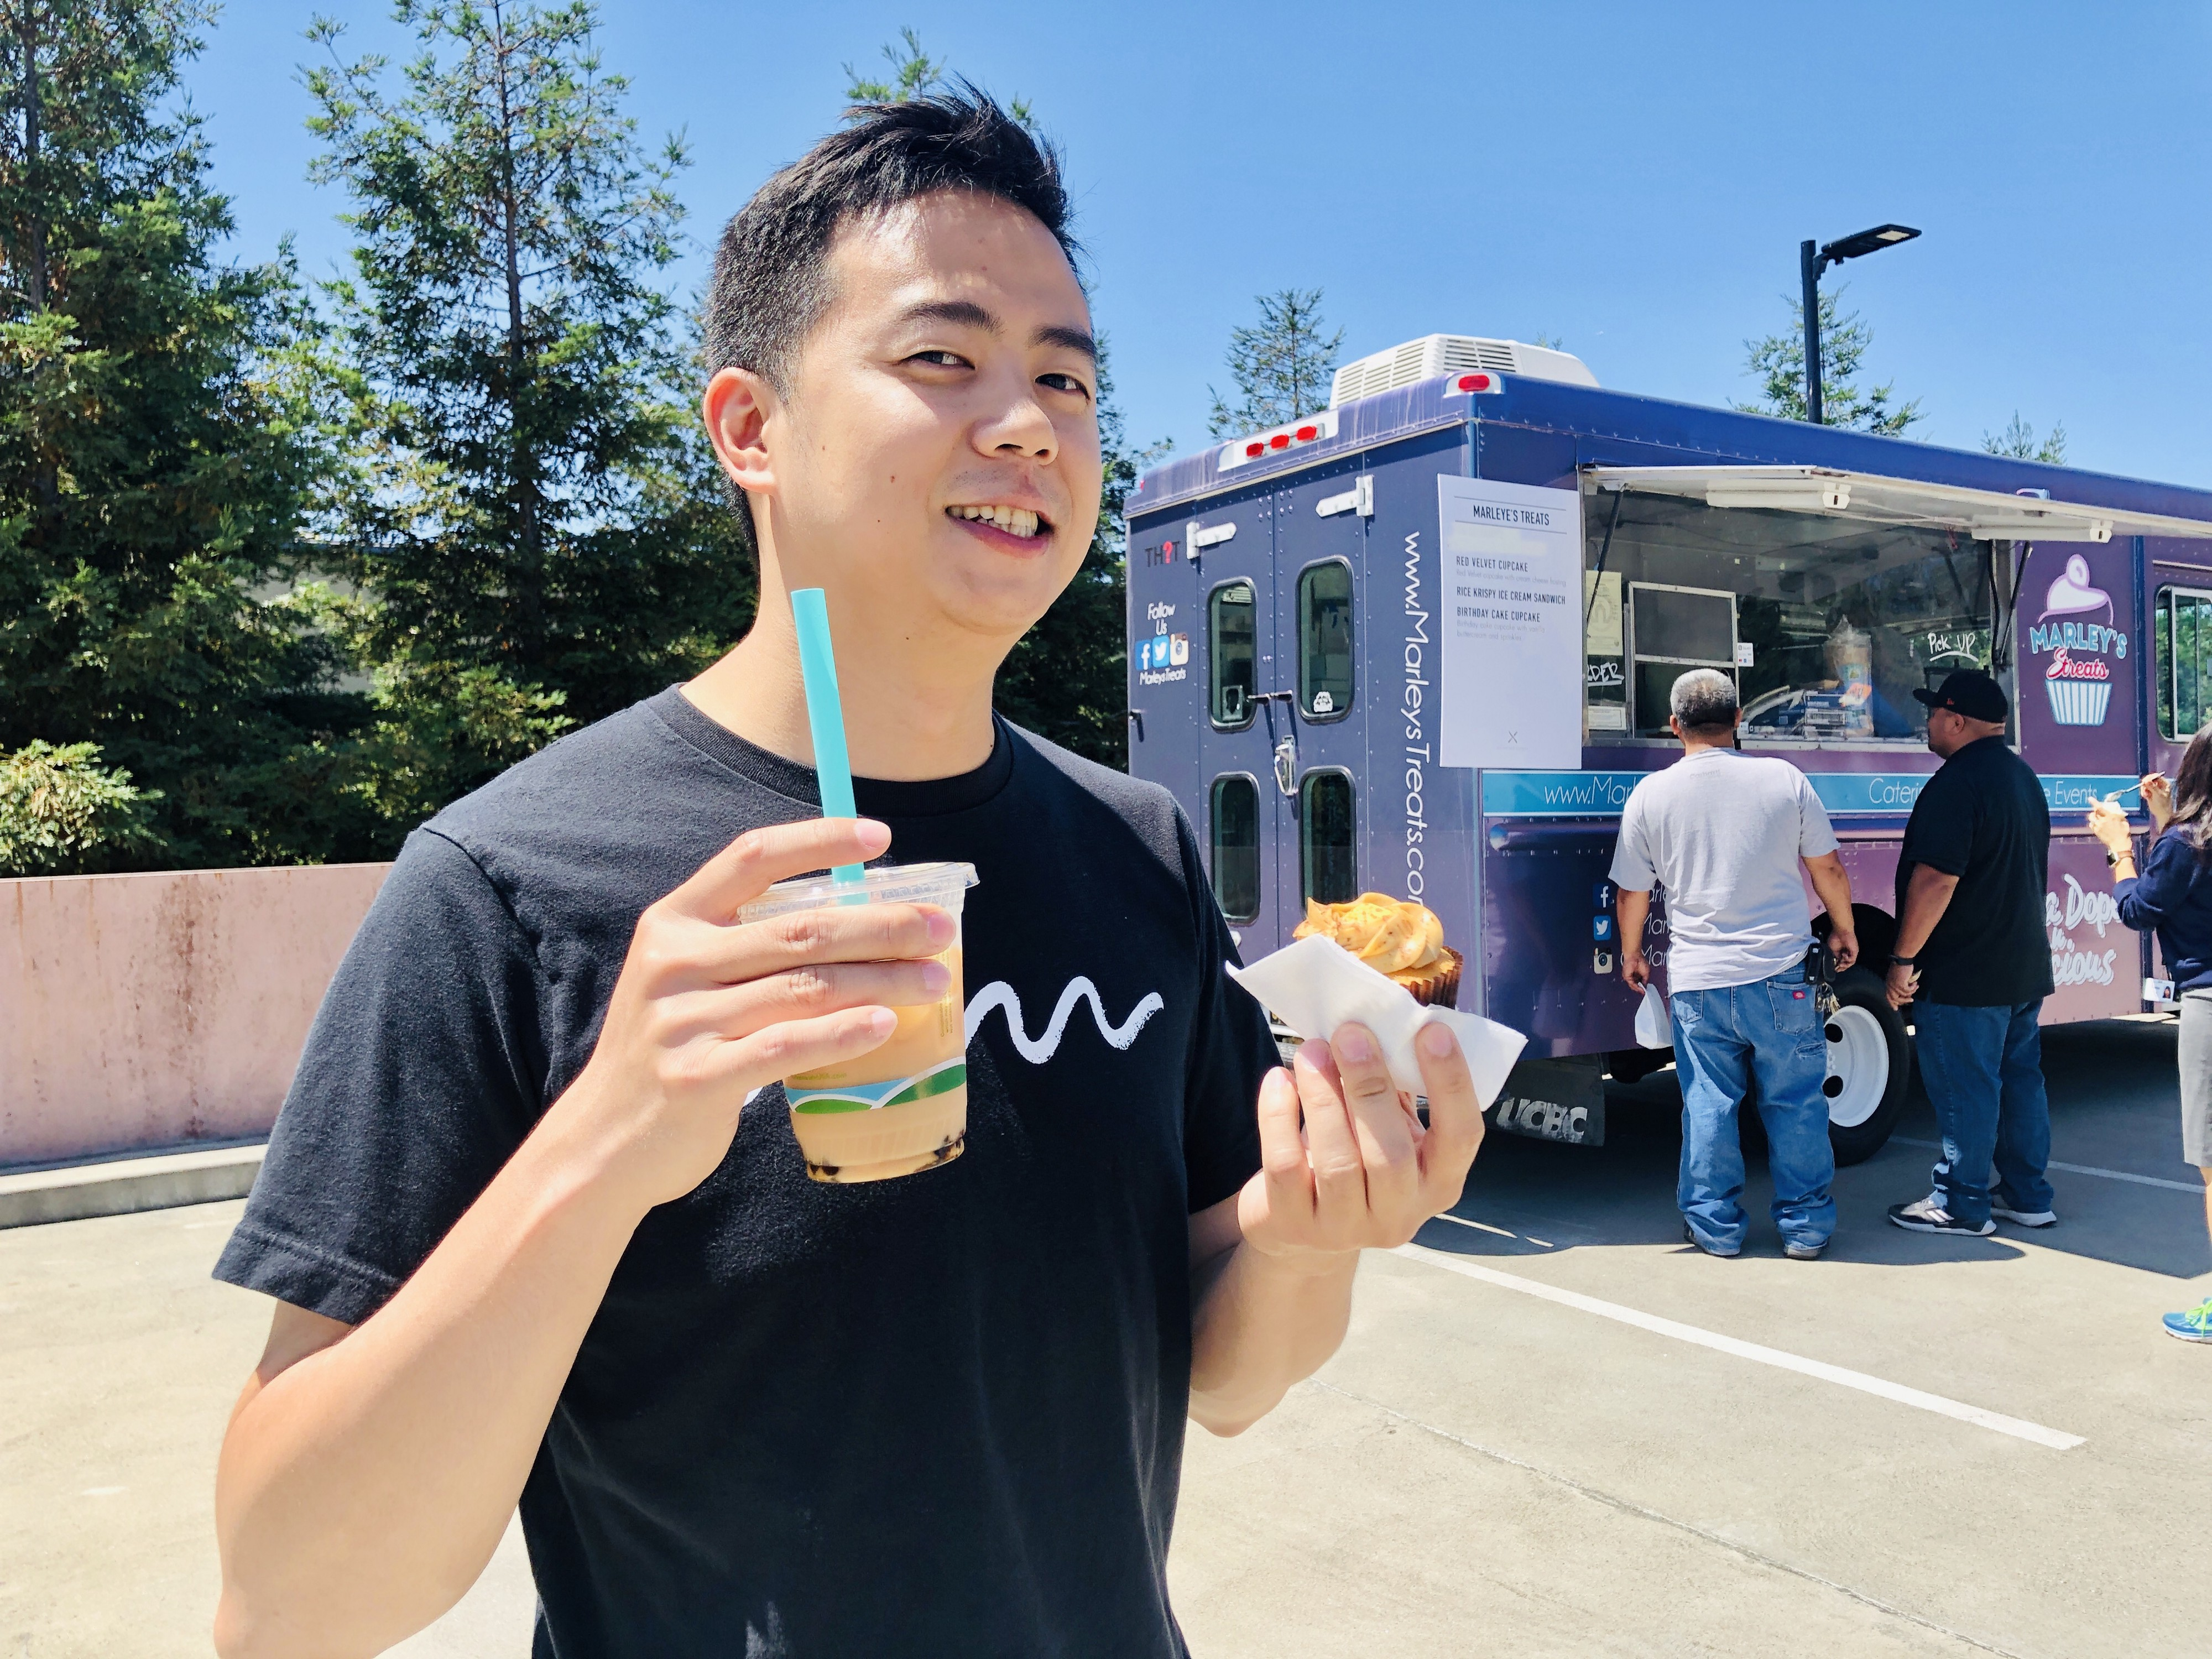 Chit Meng smiling while holding boba and a cupcake